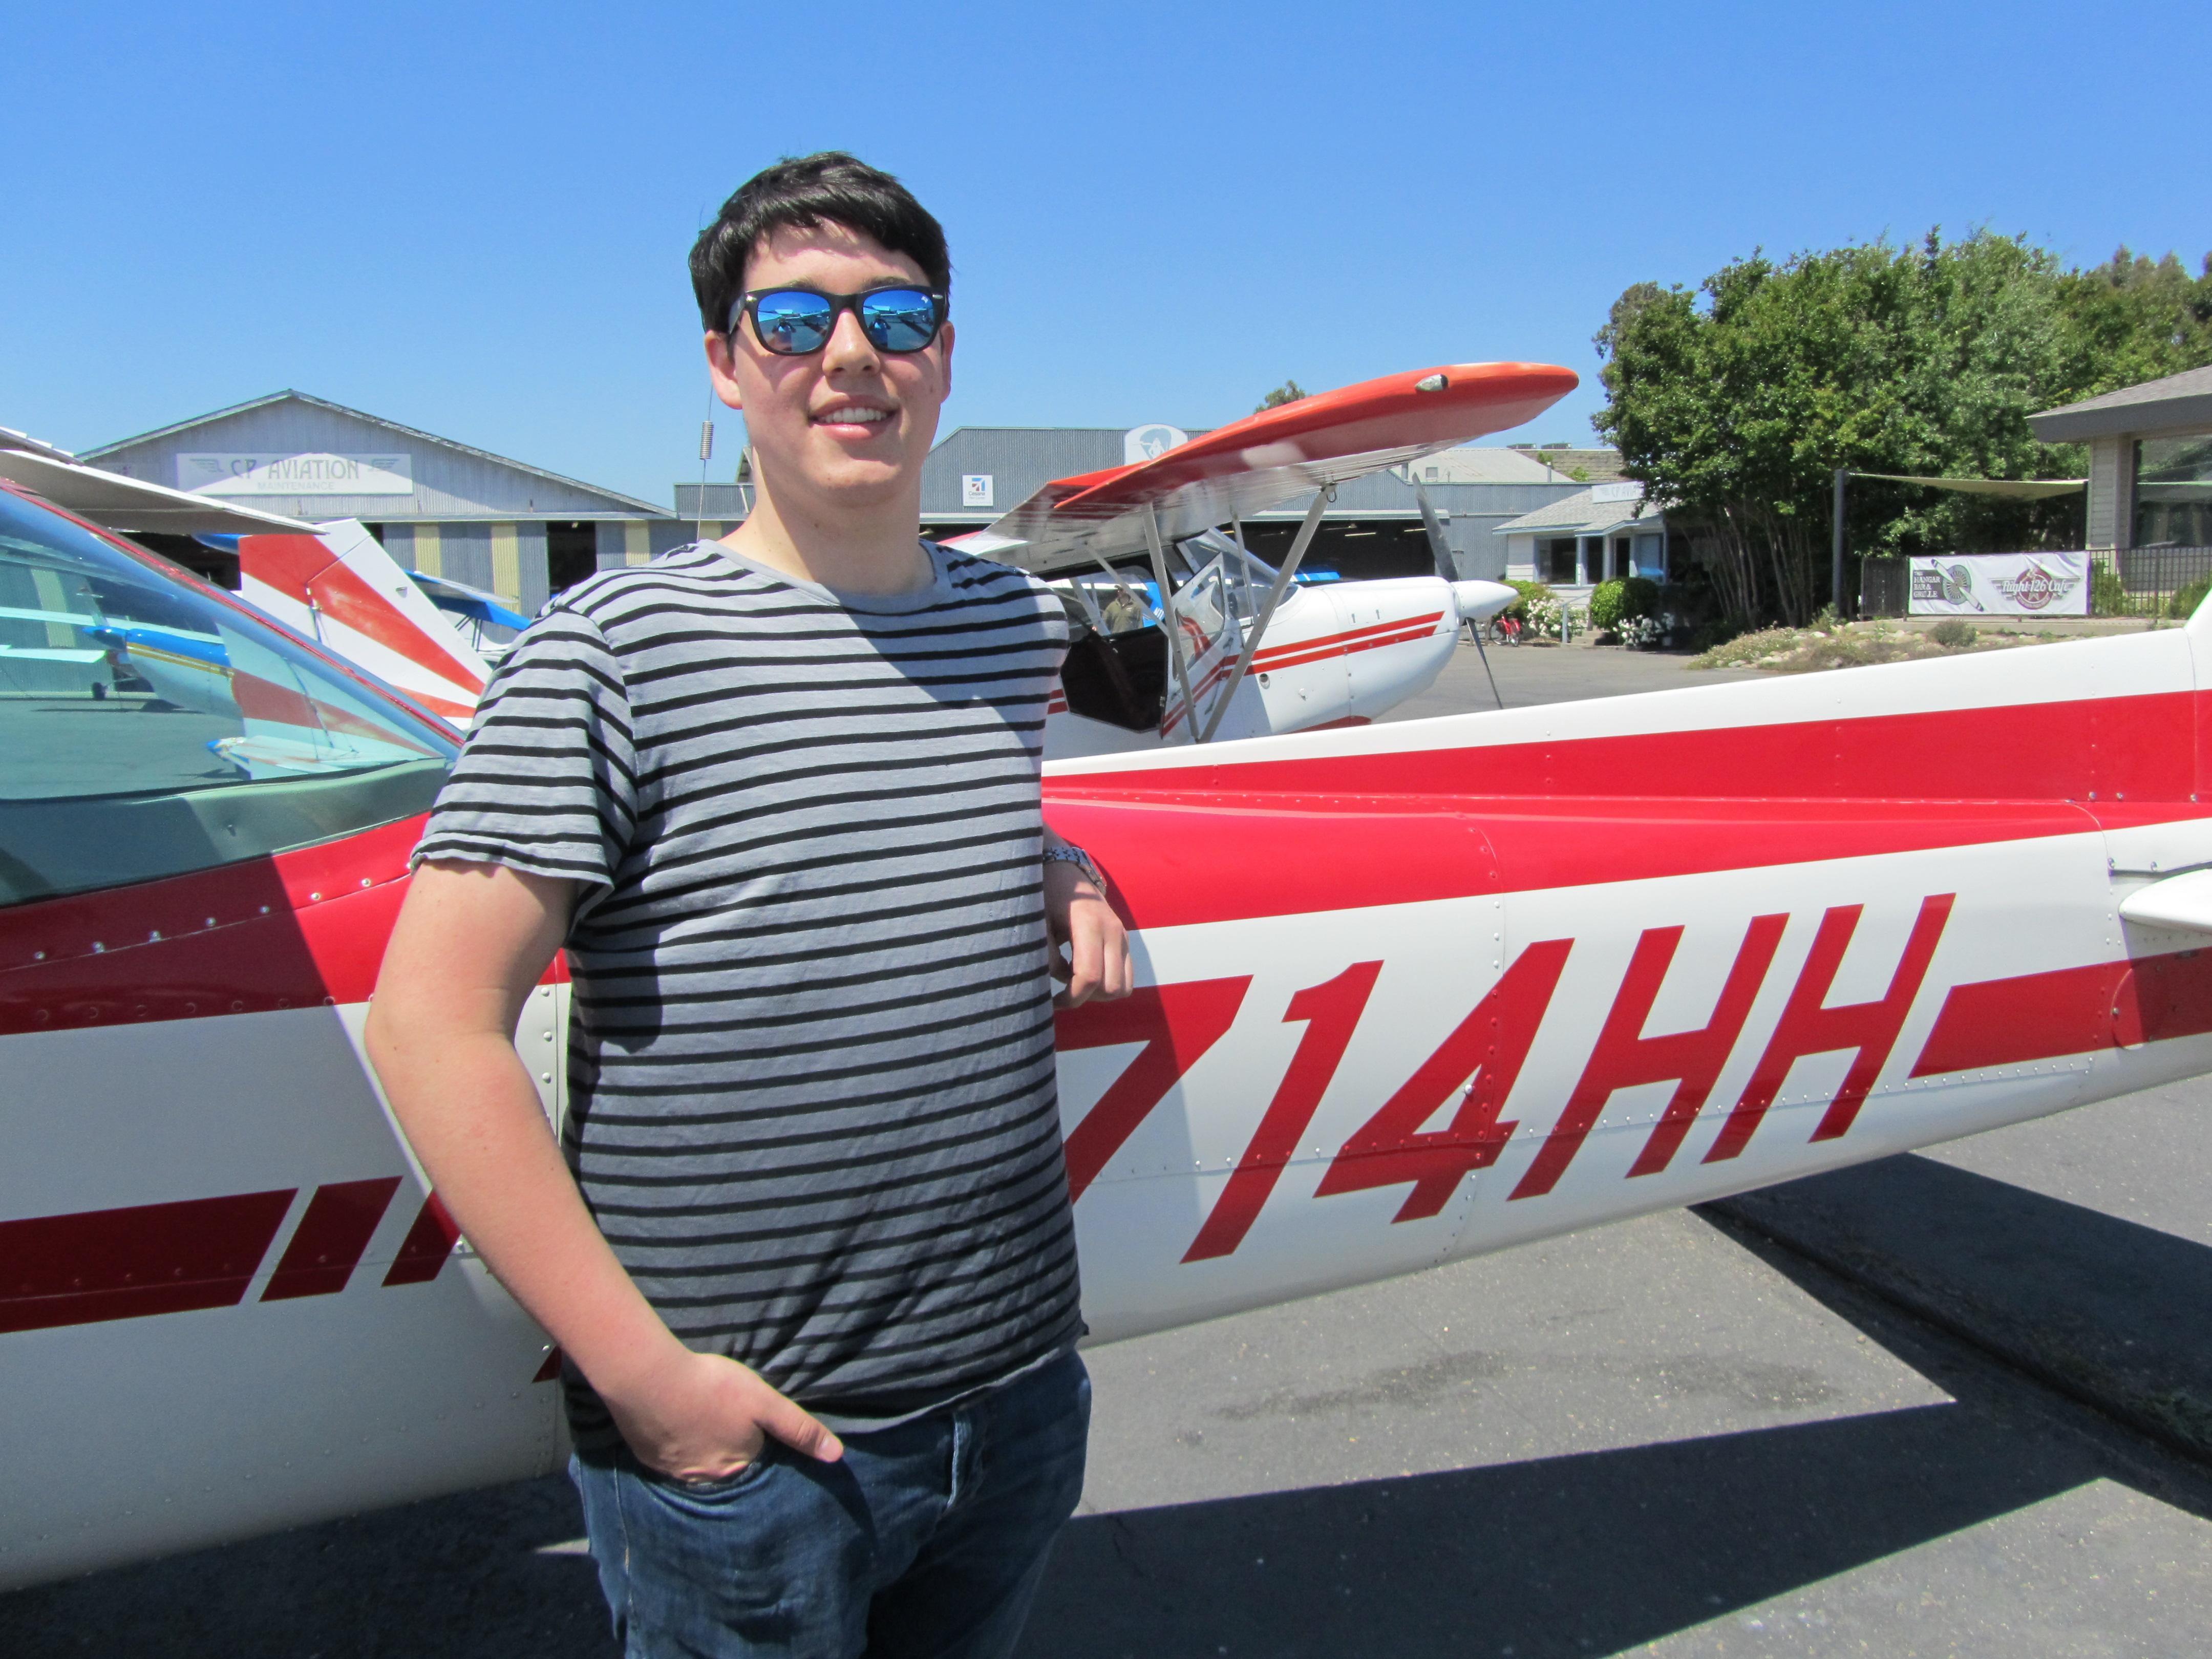 First Solo - Jasper Kuhne!